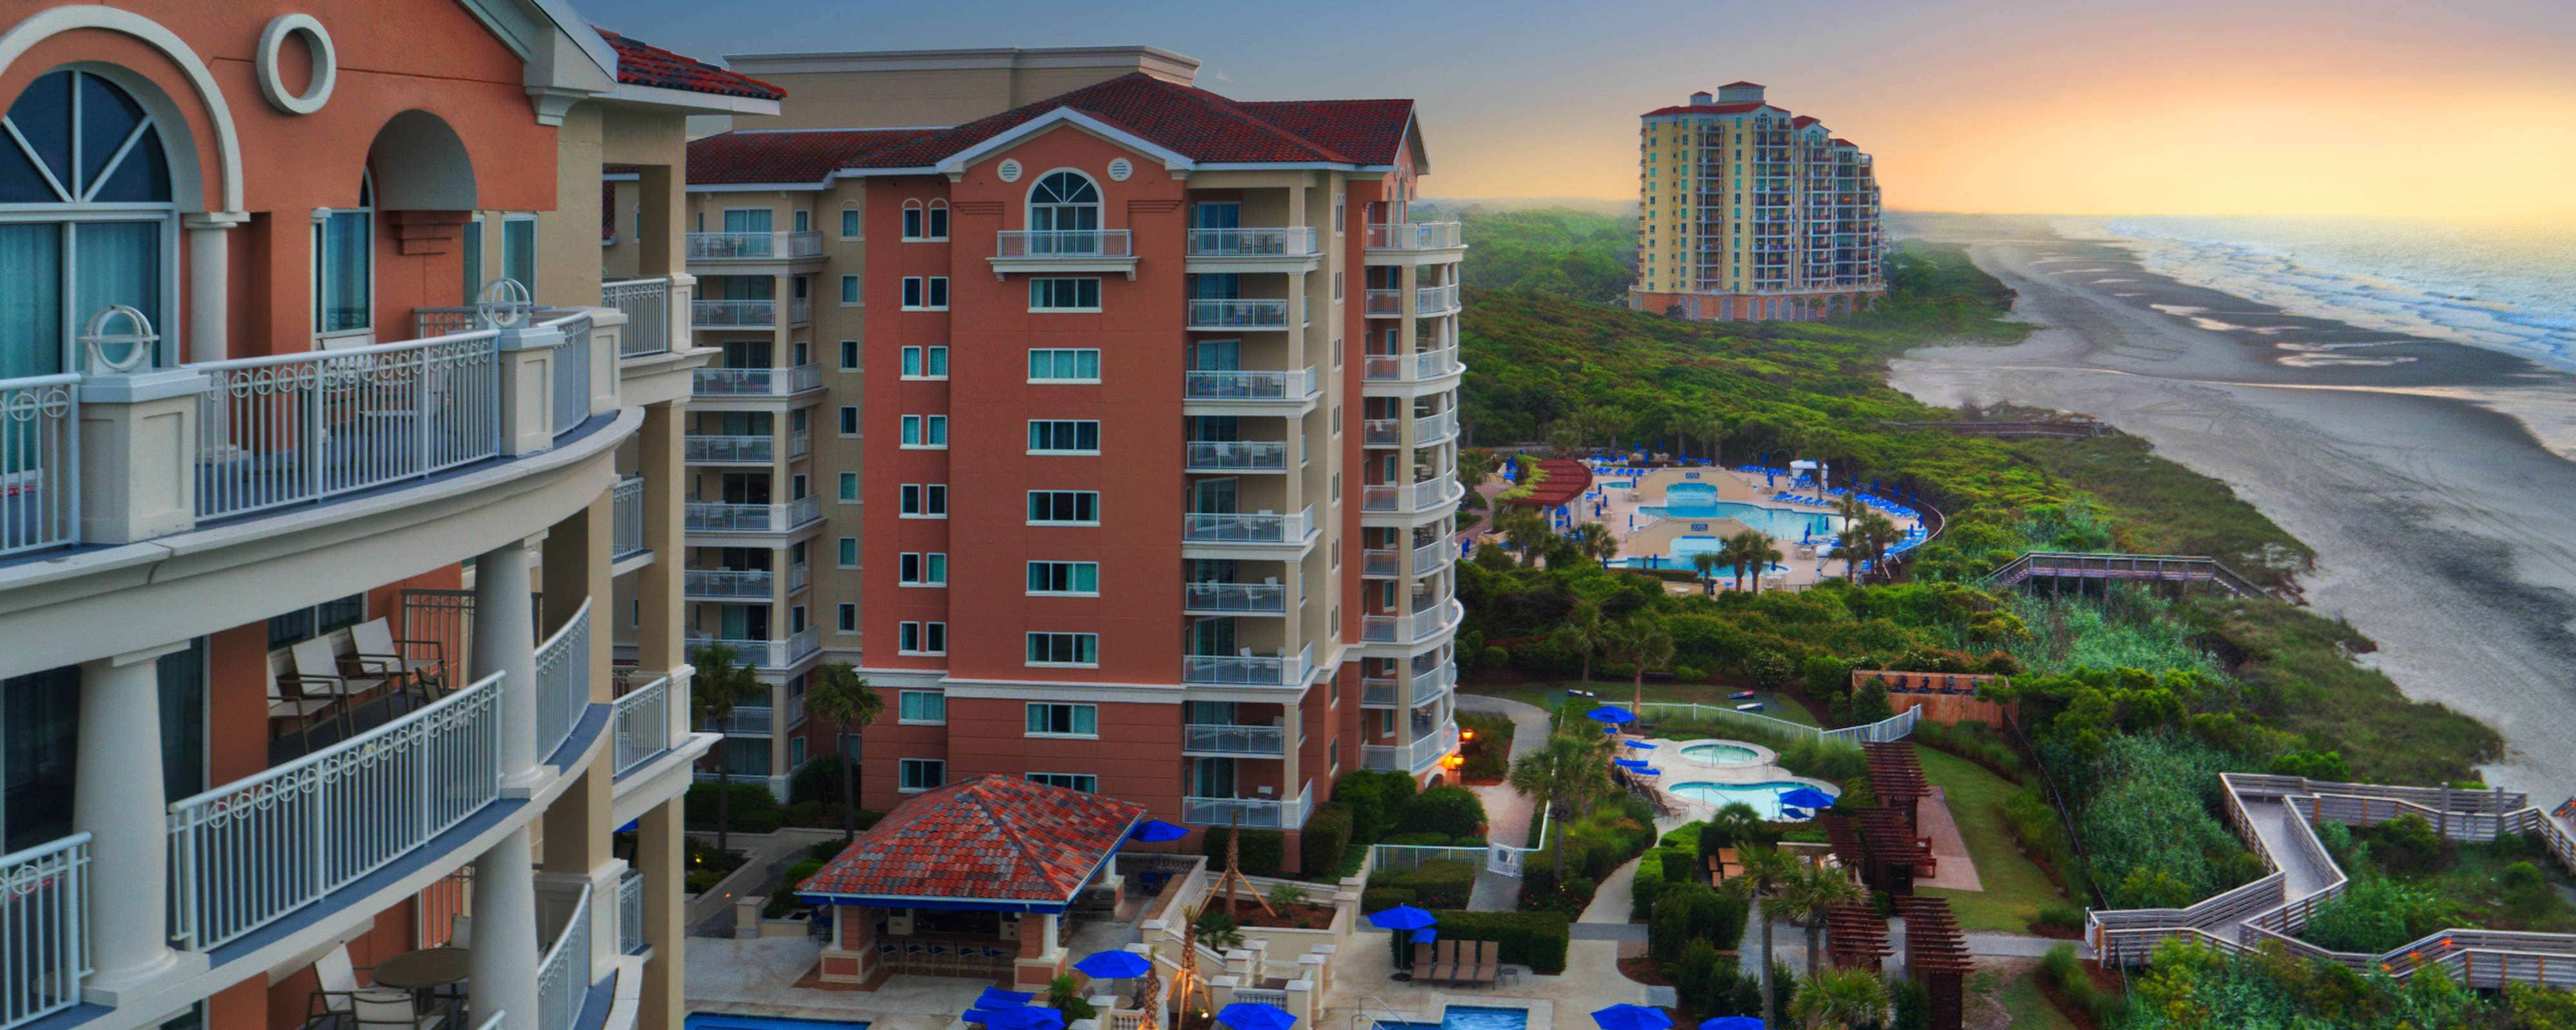 Luxury Resort In Myrtle Beach Sc Marriott S Oceanwatch Villas At Grande Dunes